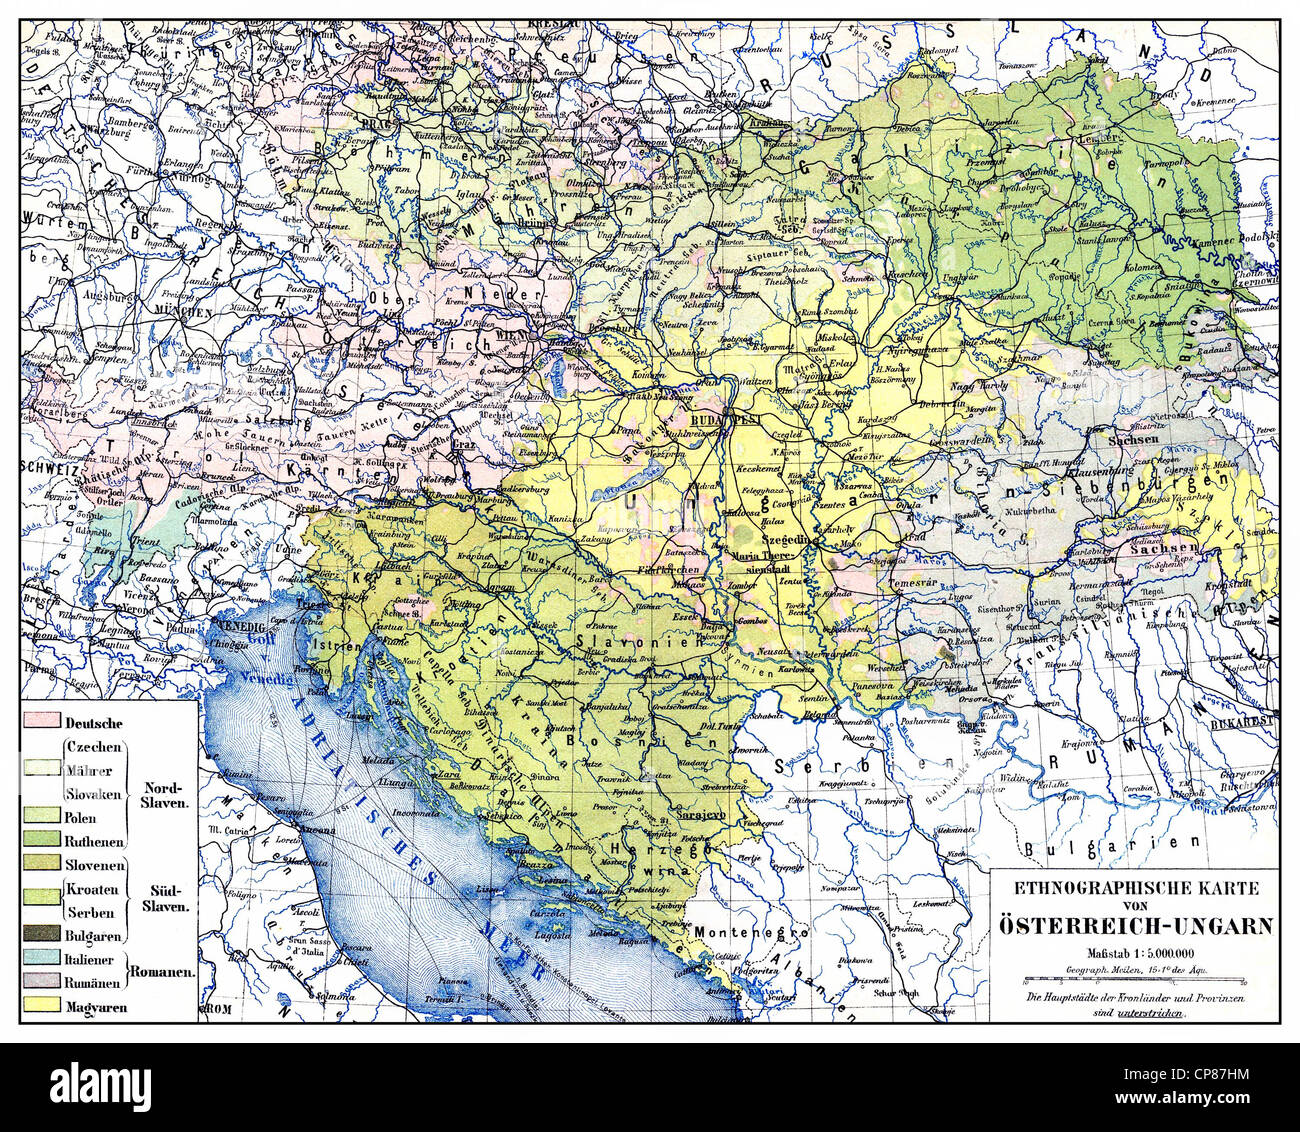 Historical ethnological map of Austria-Hungary, Dual Monarchy or kuk monarchy, for the period between 1867 and 1918, - Stock Image